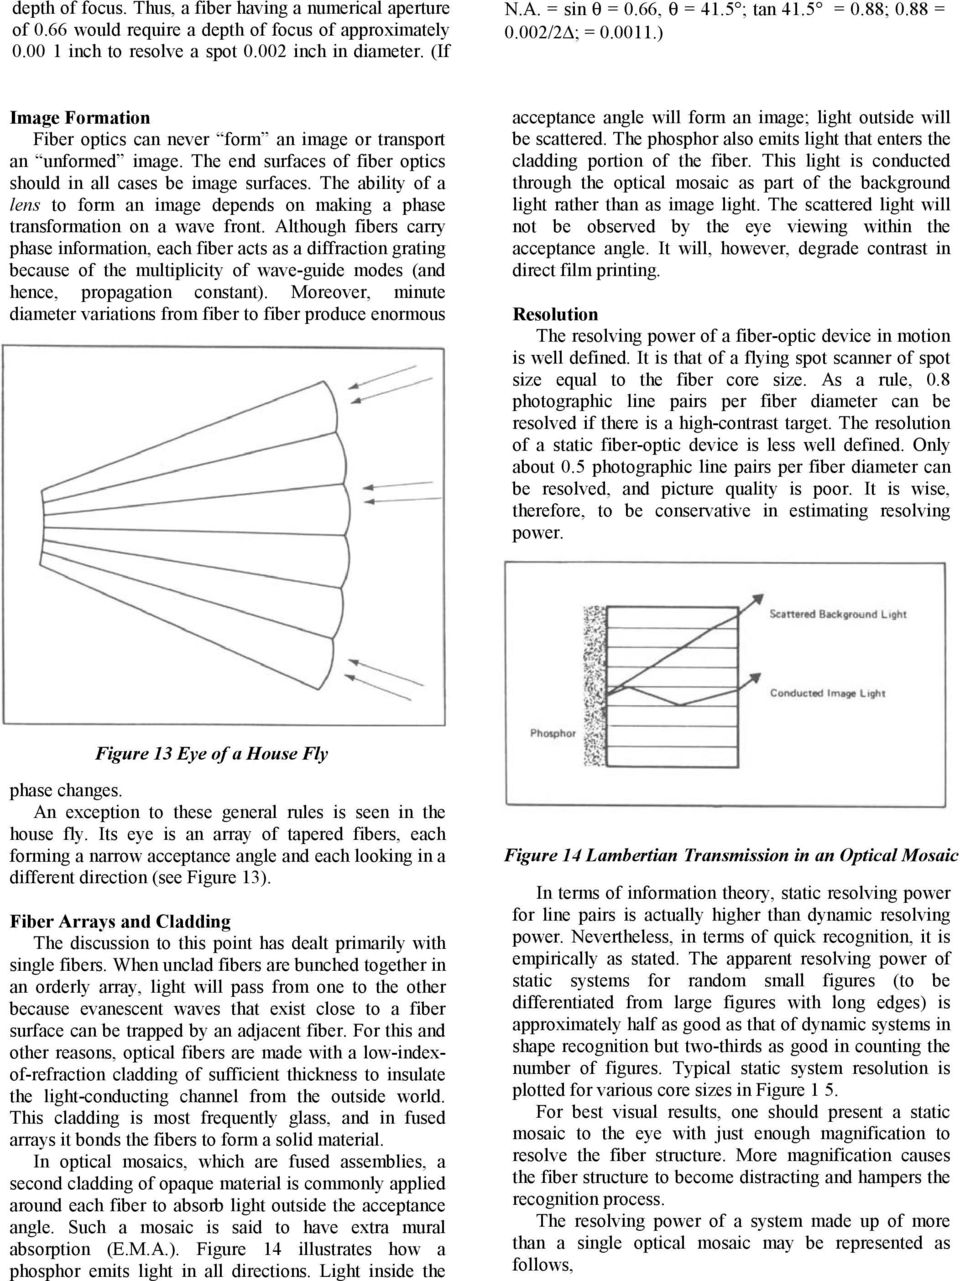 Technical Memorandum 100 Fiber Optics Theory And Applications Pdf Diagram Showing How Light Can The End Surfaces Of Should In All Cases Be Image Ability